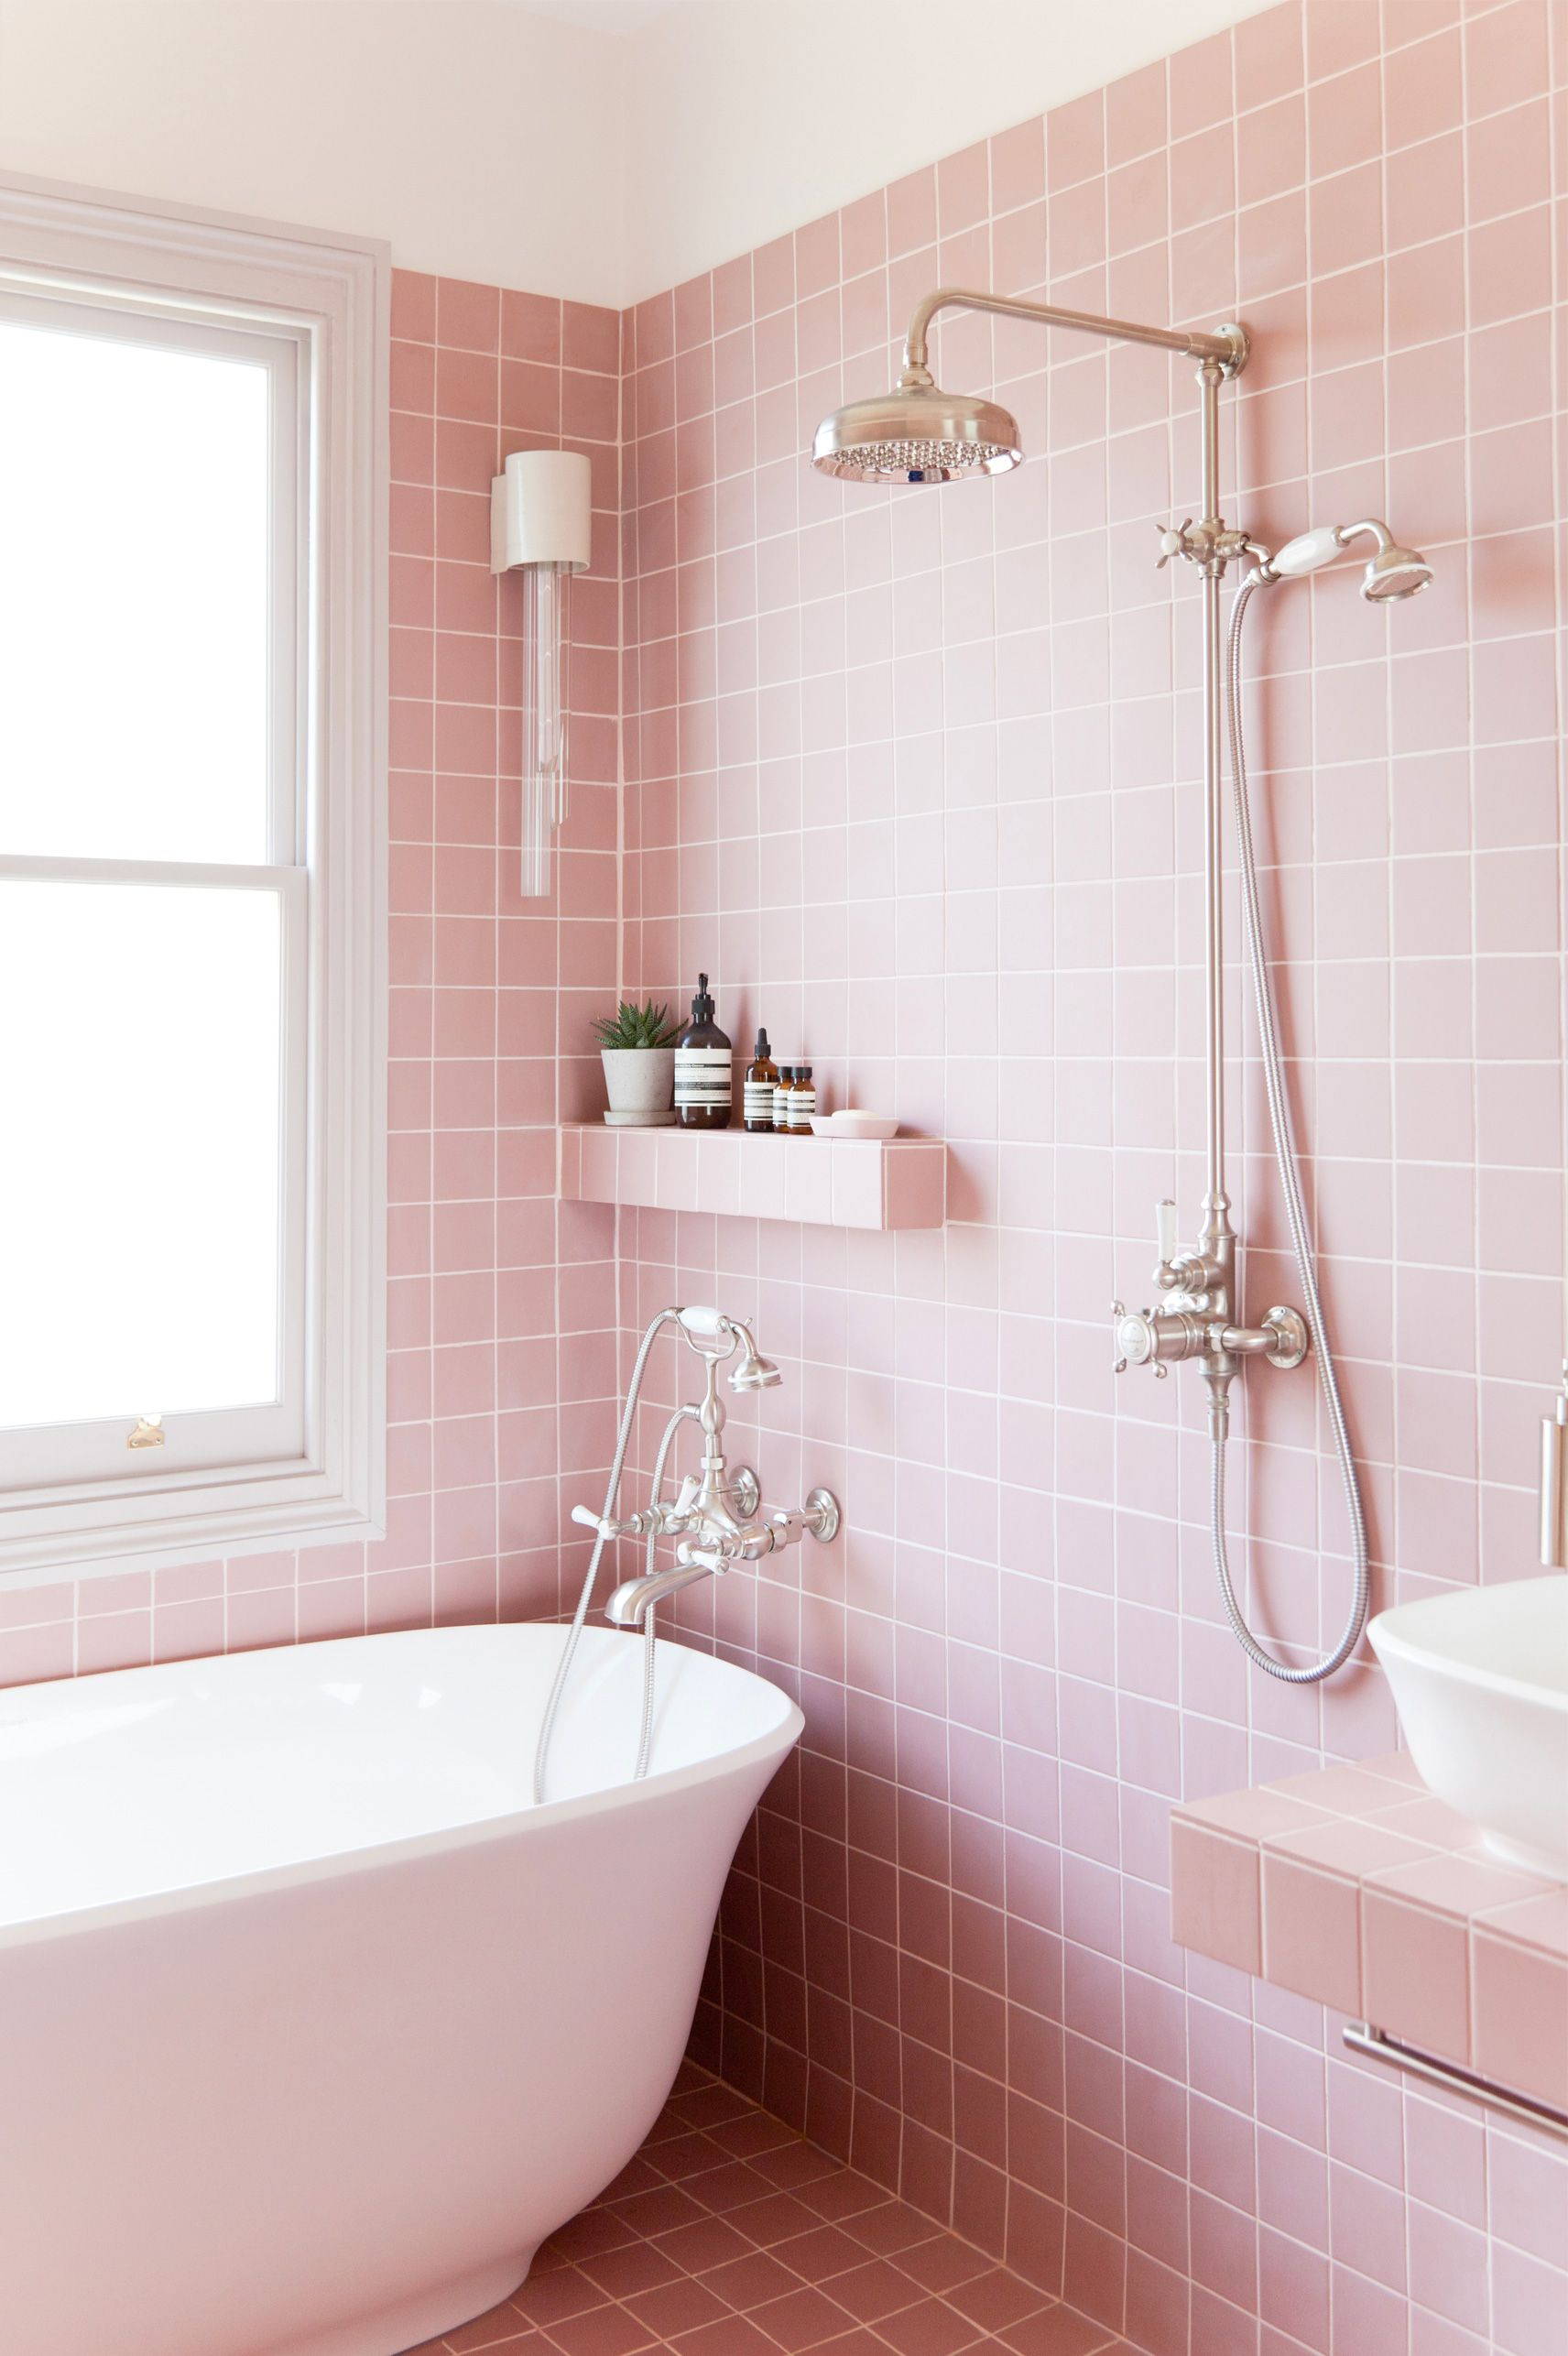 Our New Pink Bathroom You Can Read More And See The Full Remodel On Blog Http Www 2lgstudio With Victoria Albert Baths Tile Giant X